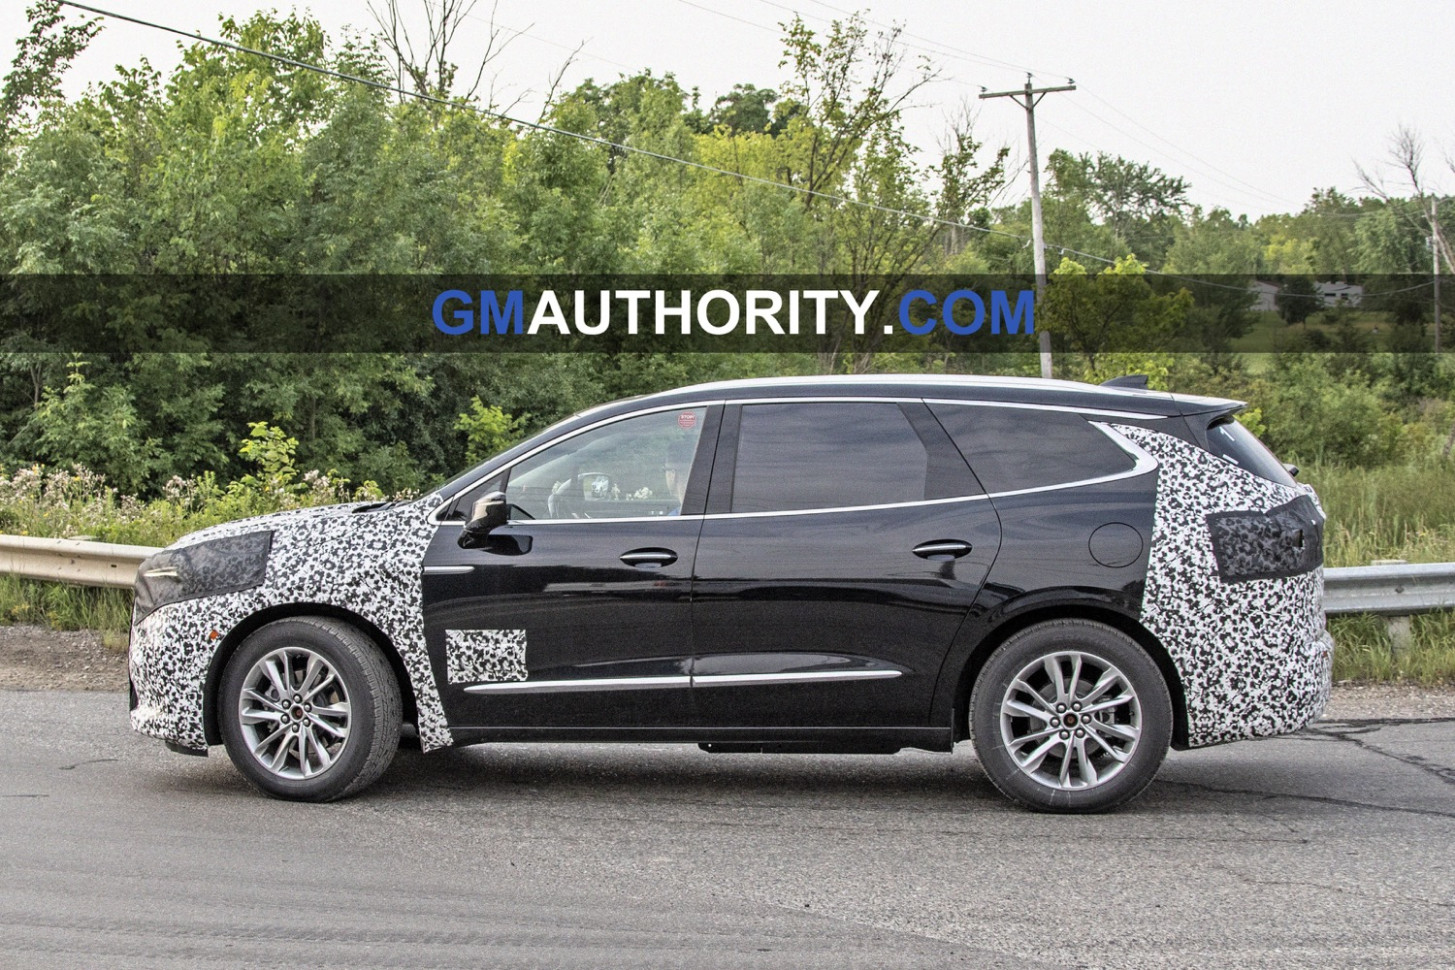 Release 2022 Buick Enclave